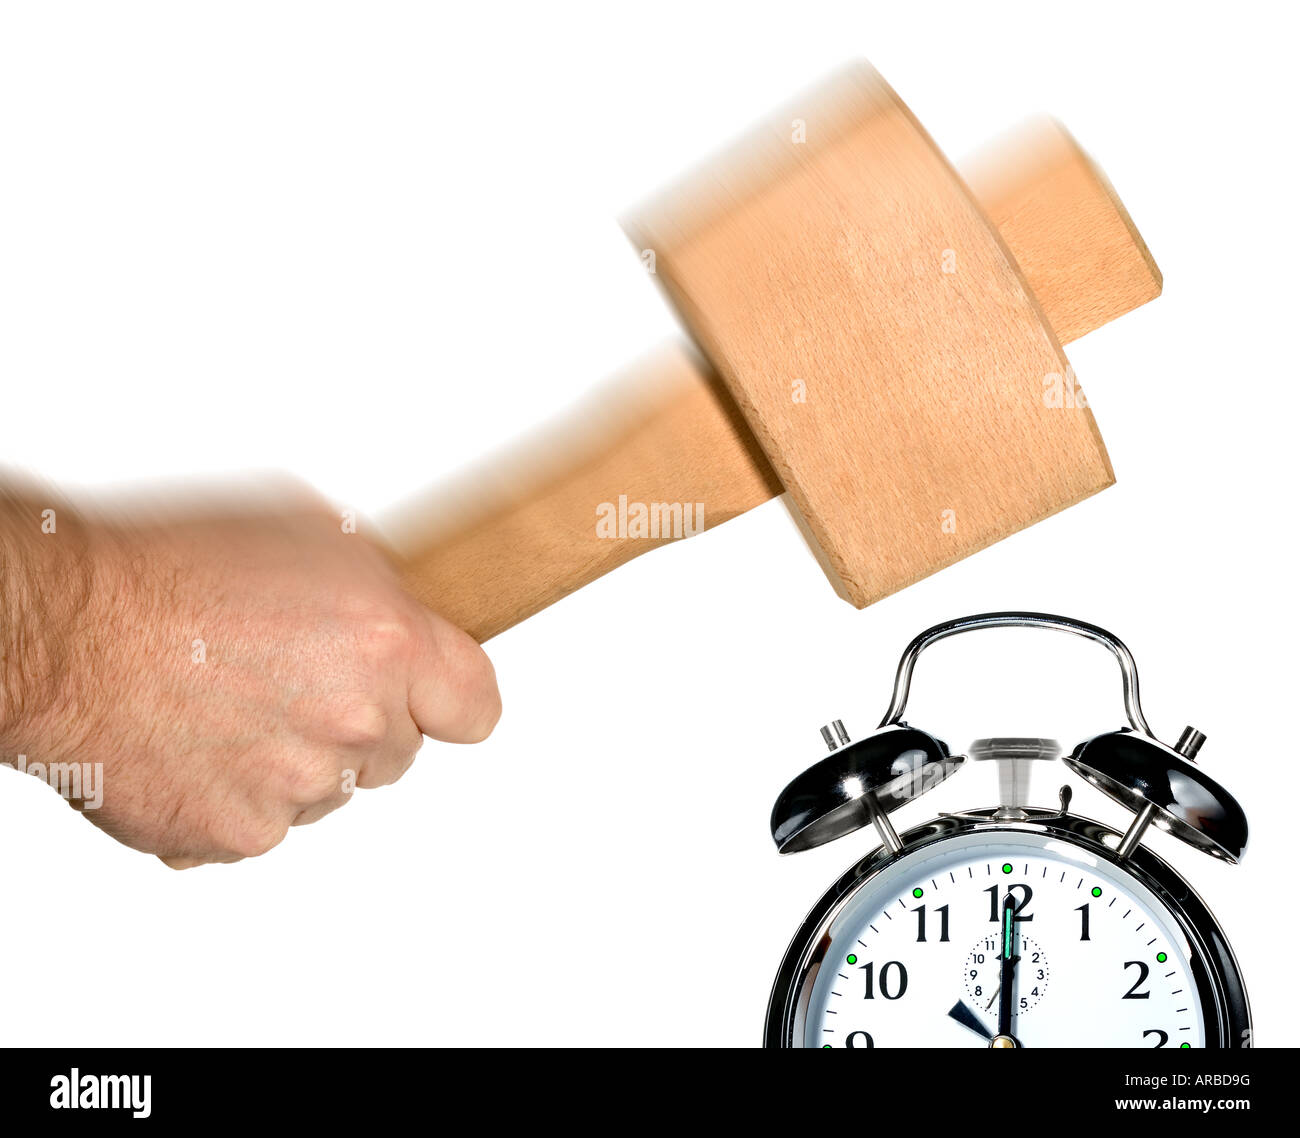 Concept image for turning off the alarm clock in the morning - Stock Image